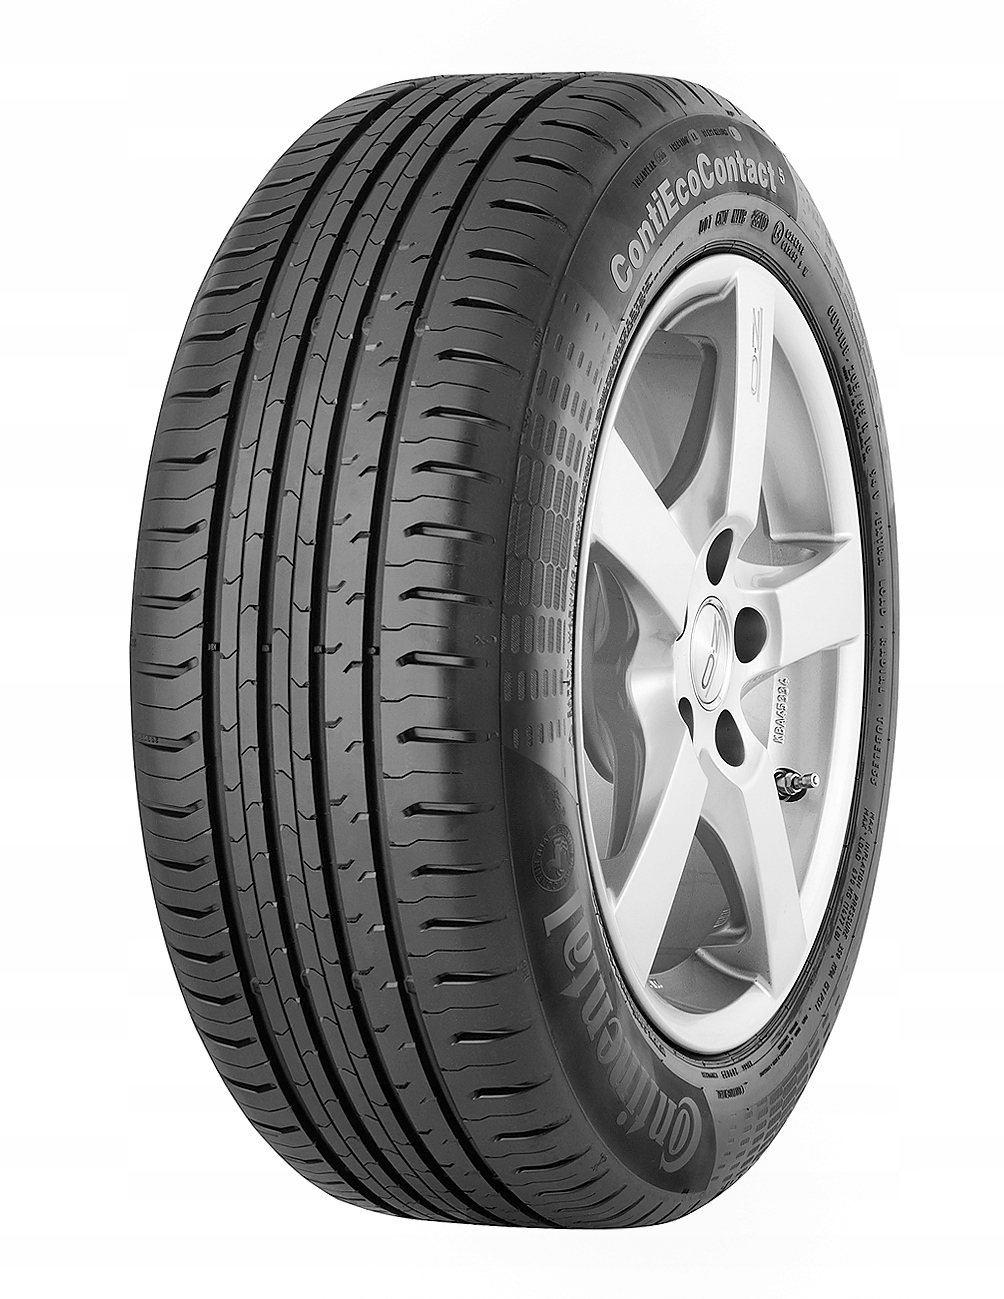 1x Continental ContiEcoContact 5 195/65 R15 95H XL